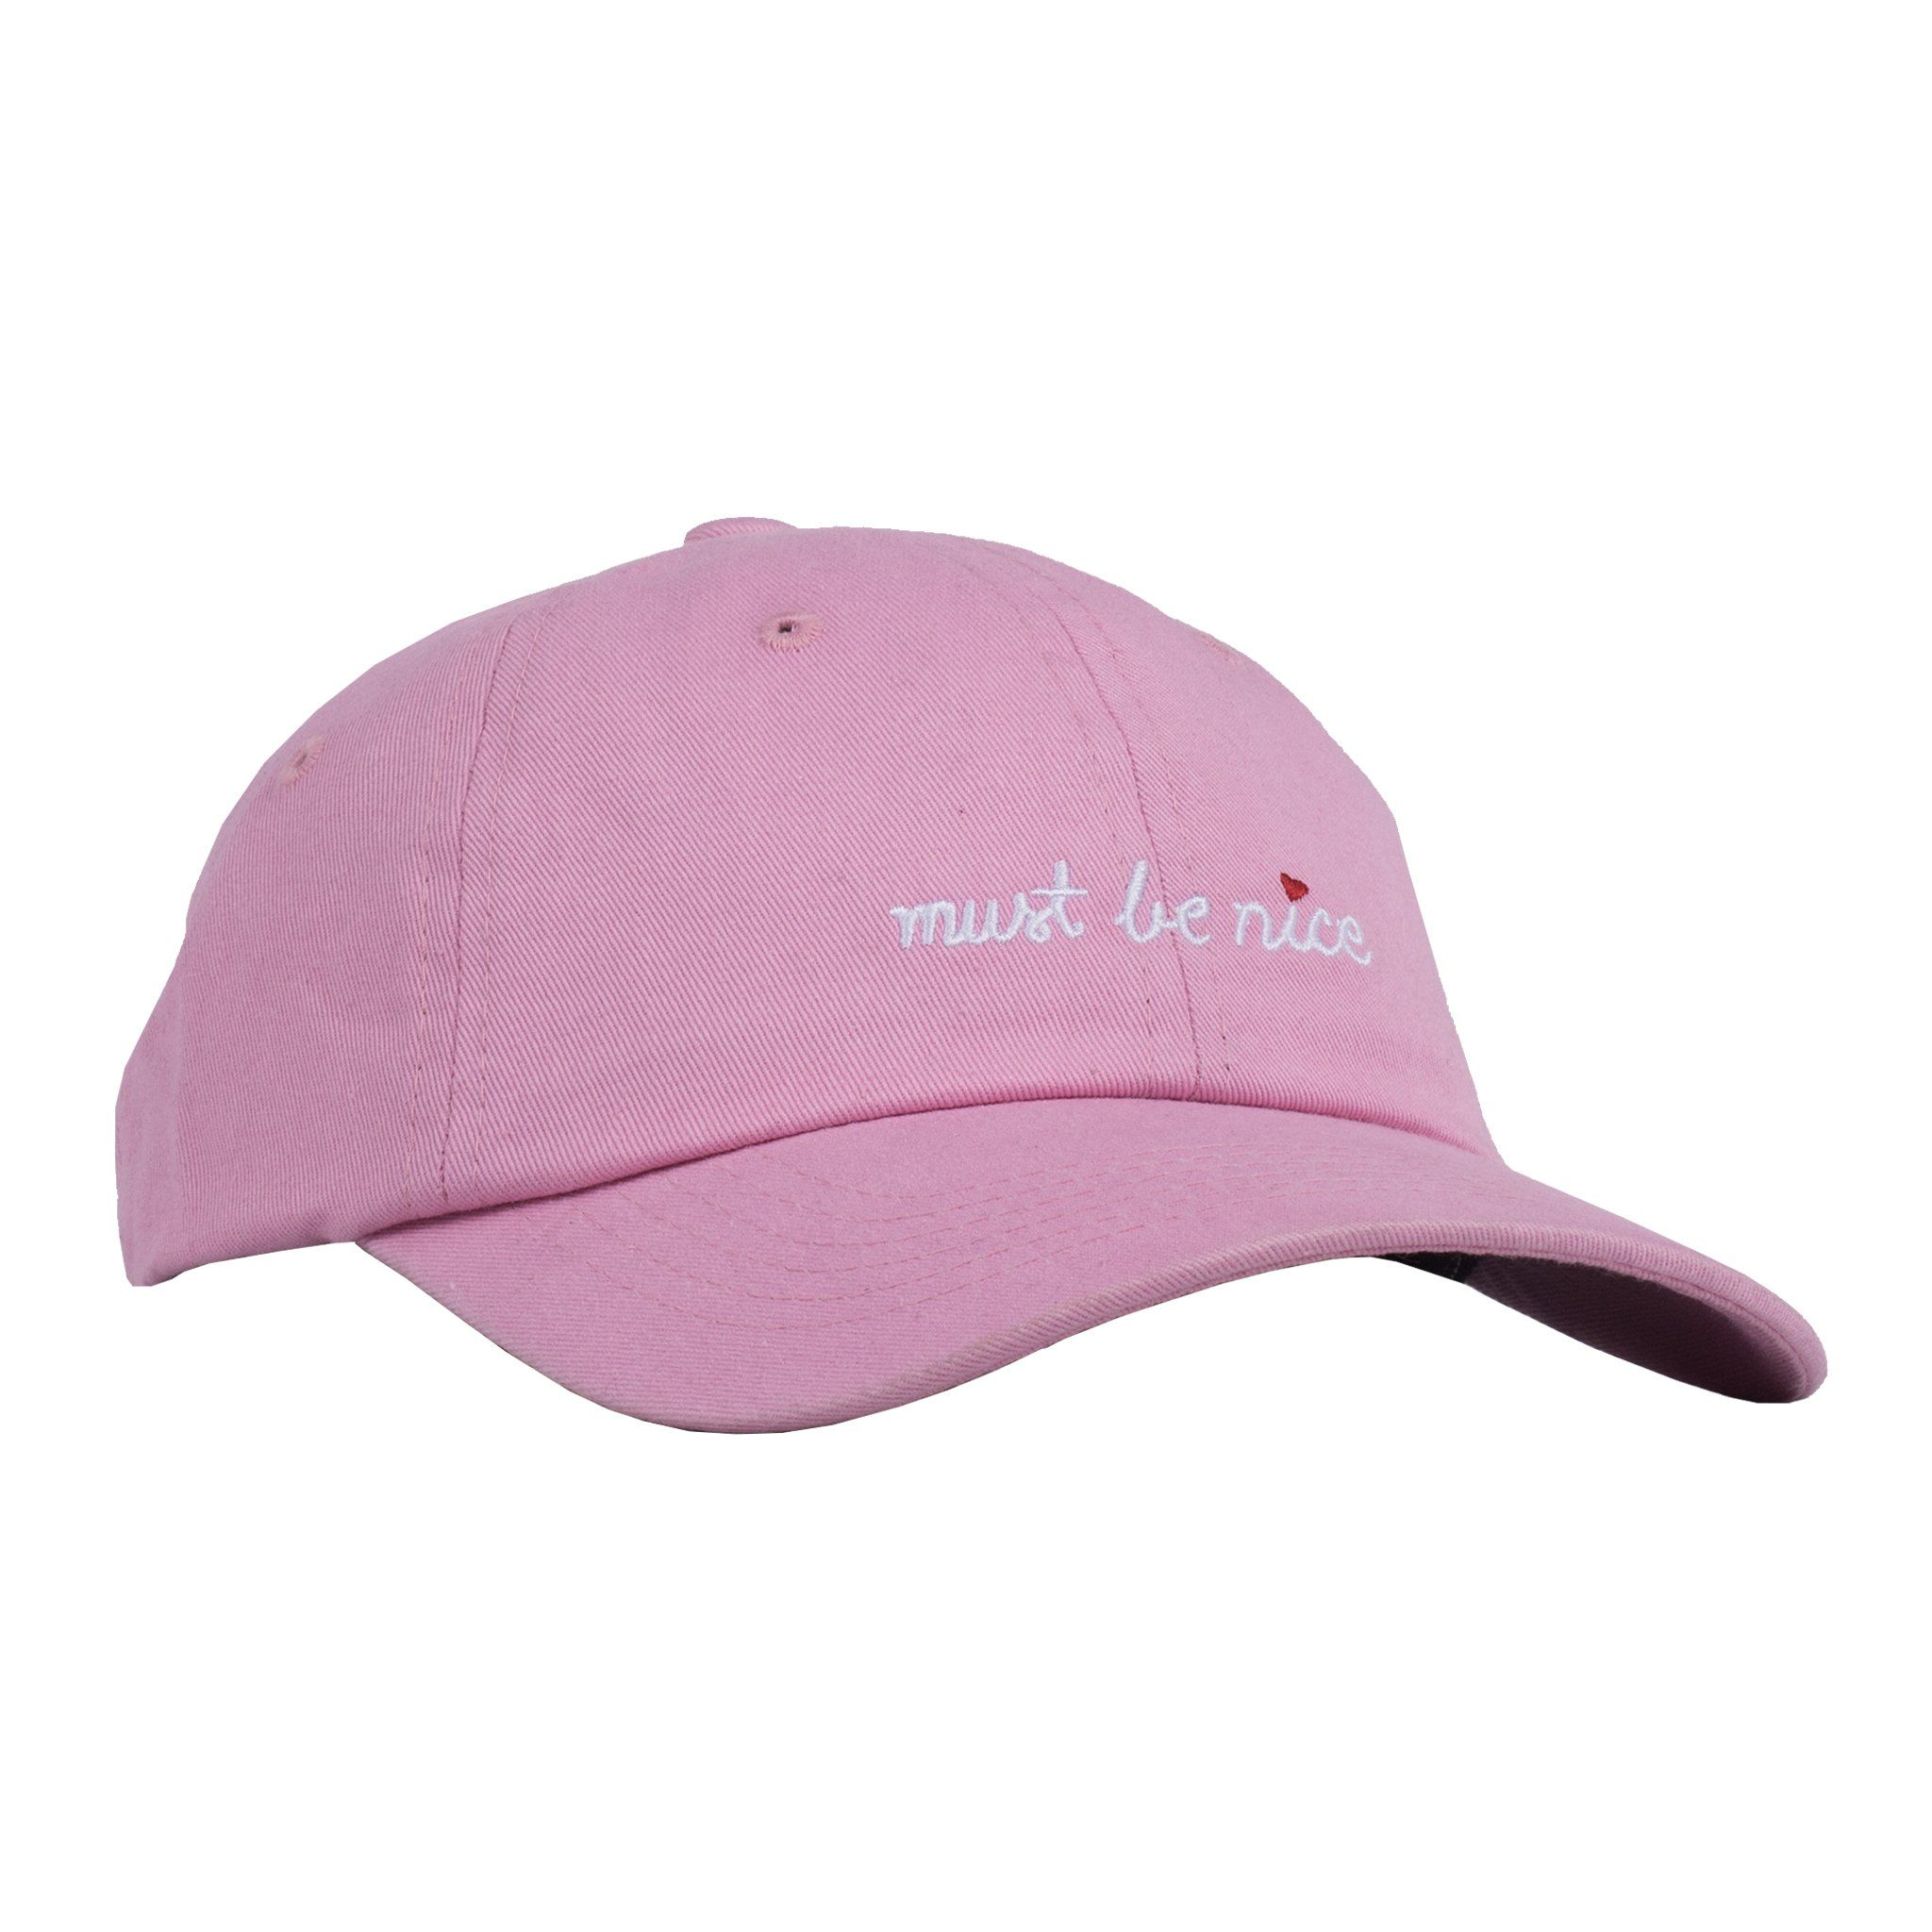 0a10a10790d8f RipNDip - Must Be Nice Script Dad Hat (in Pink) ☆